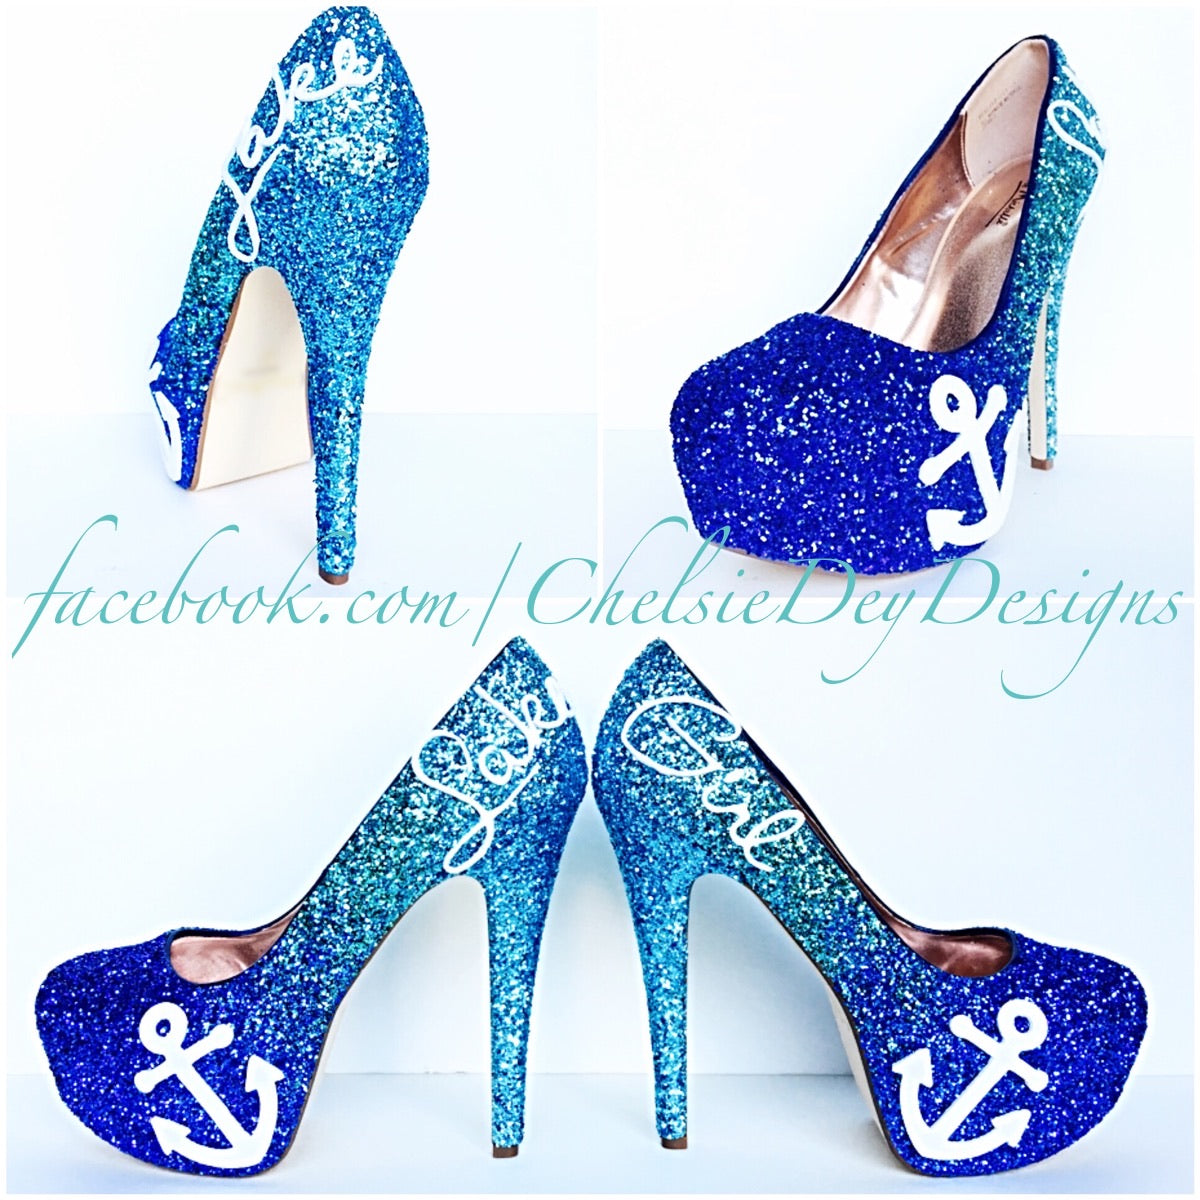 cc5c2f21508 Blue Ombre Glitter High Heels, Lake Girl Wedding Shoes, Sparkly Prom Pumps